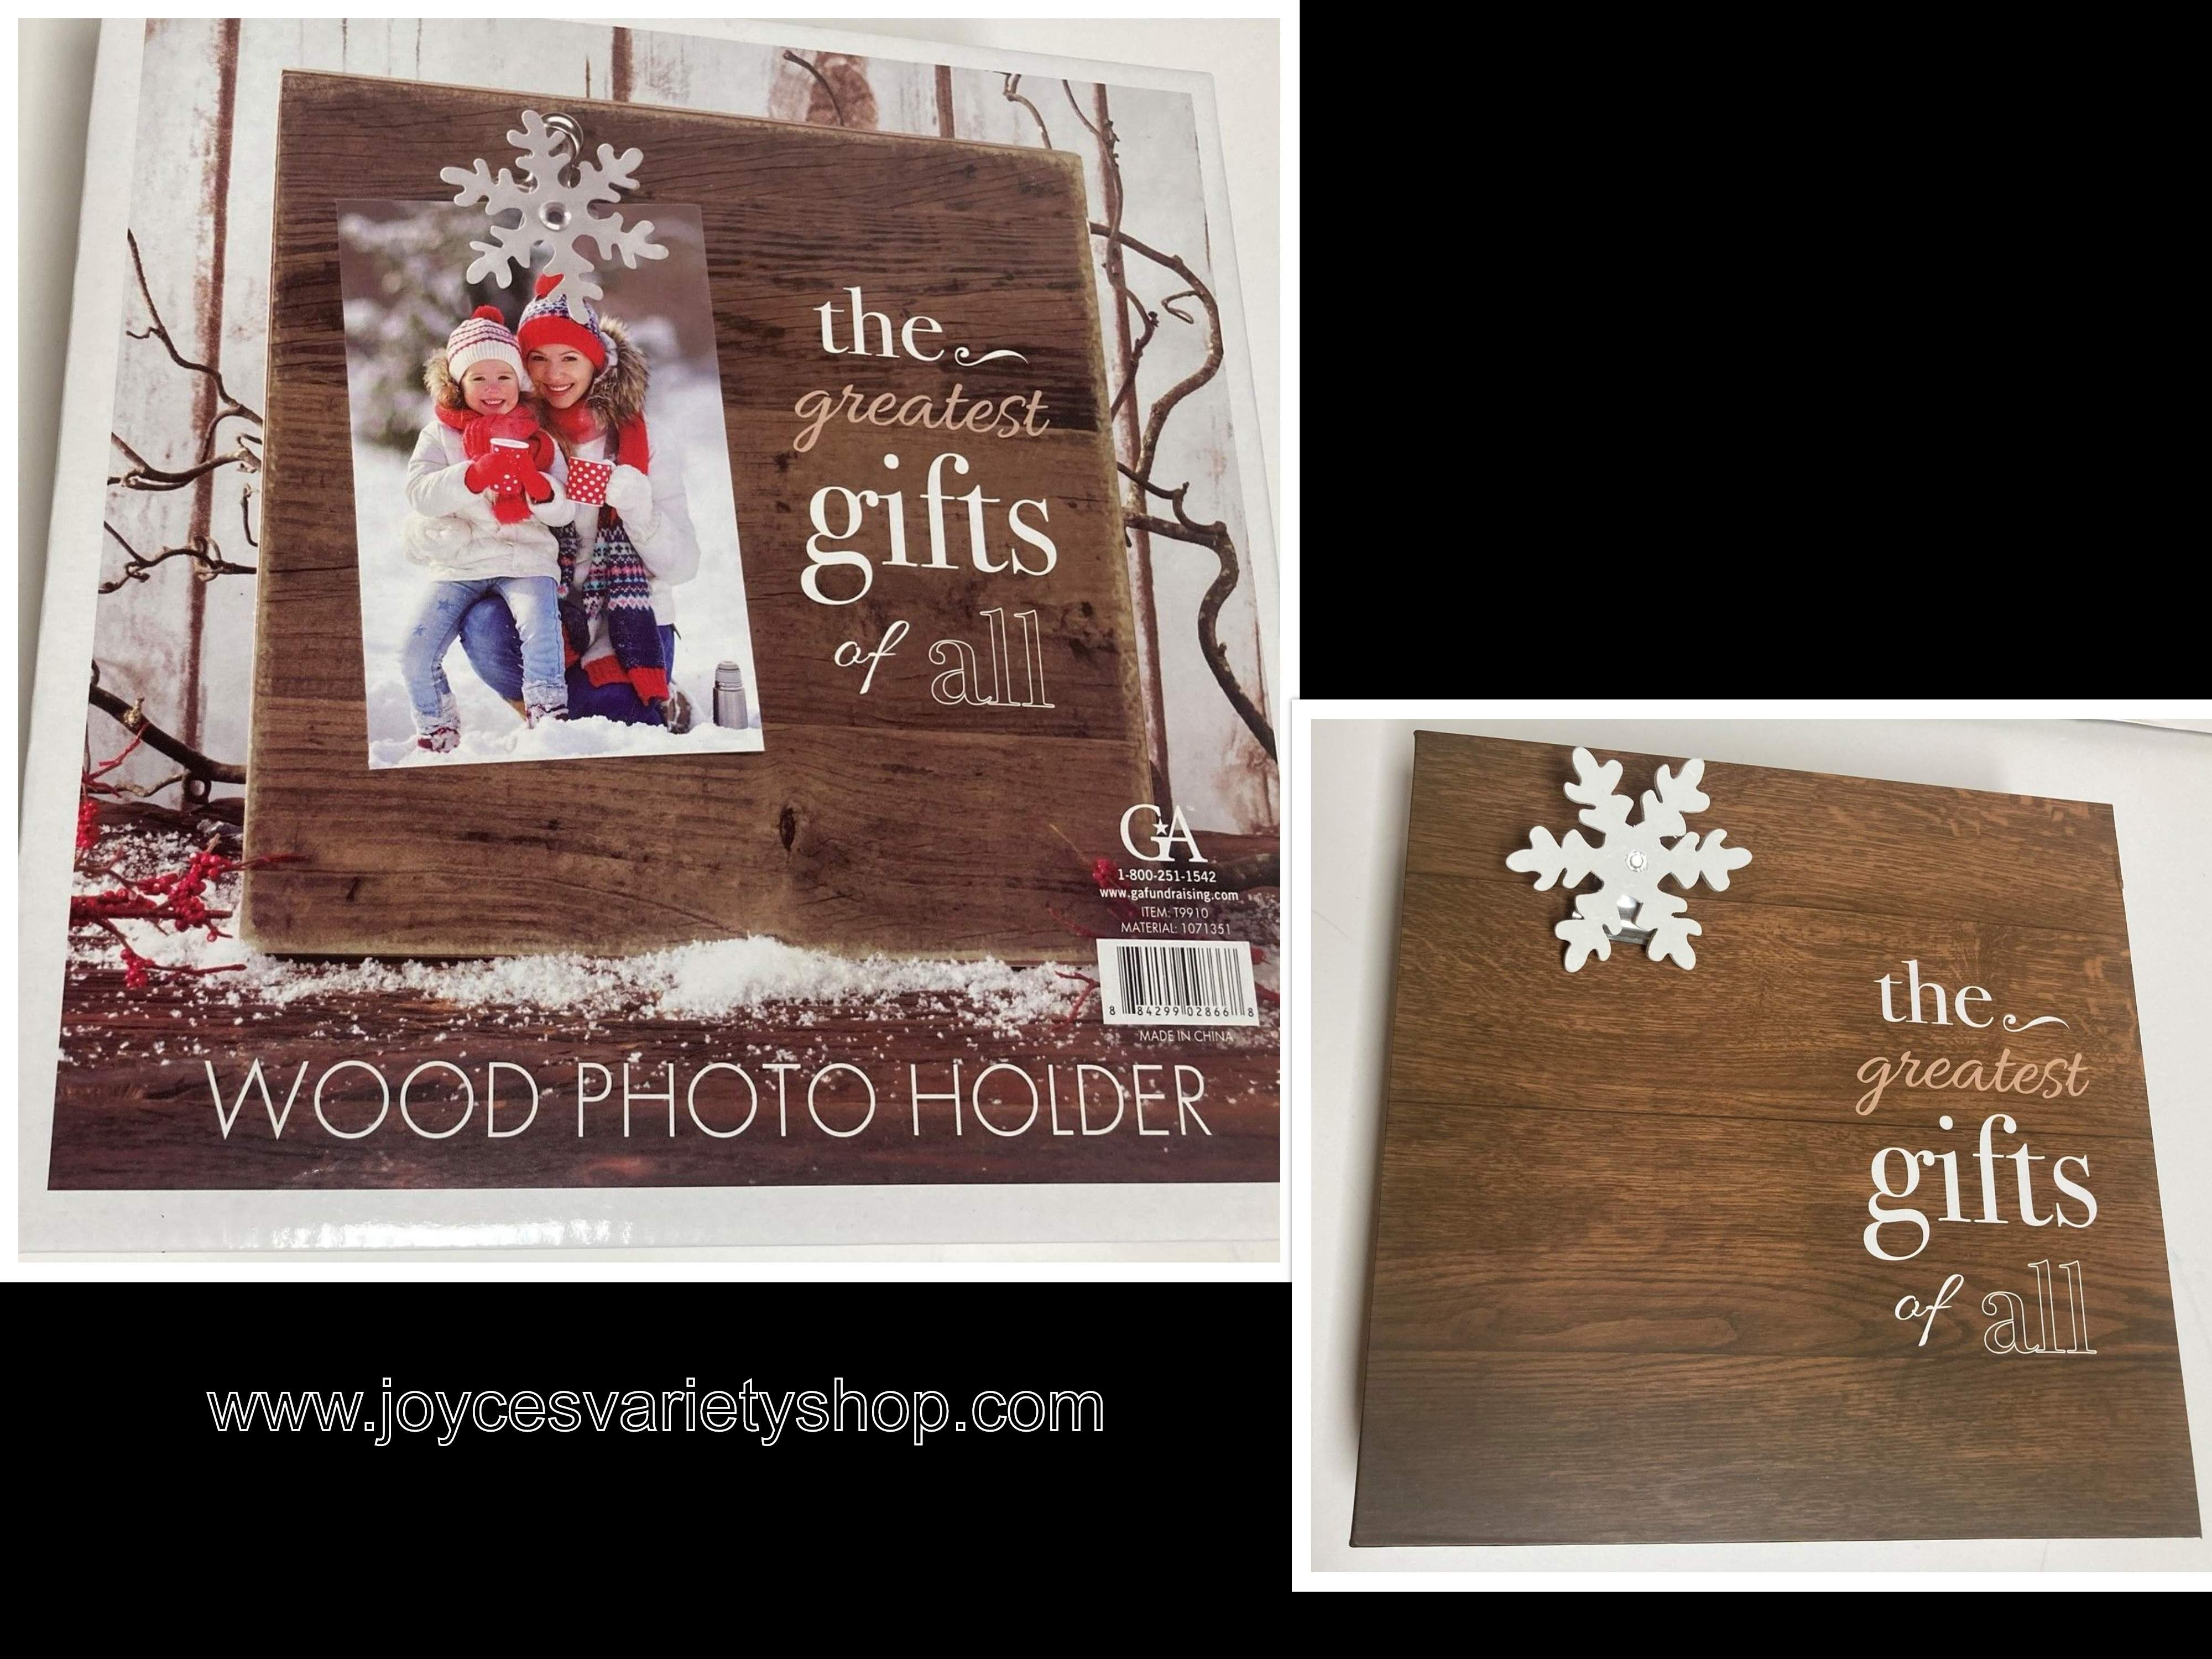 "Wood Photo Holder 9"" x 9"" x 1.5"" Block & Clip ""The Greatest Gift of All"" Holiday"